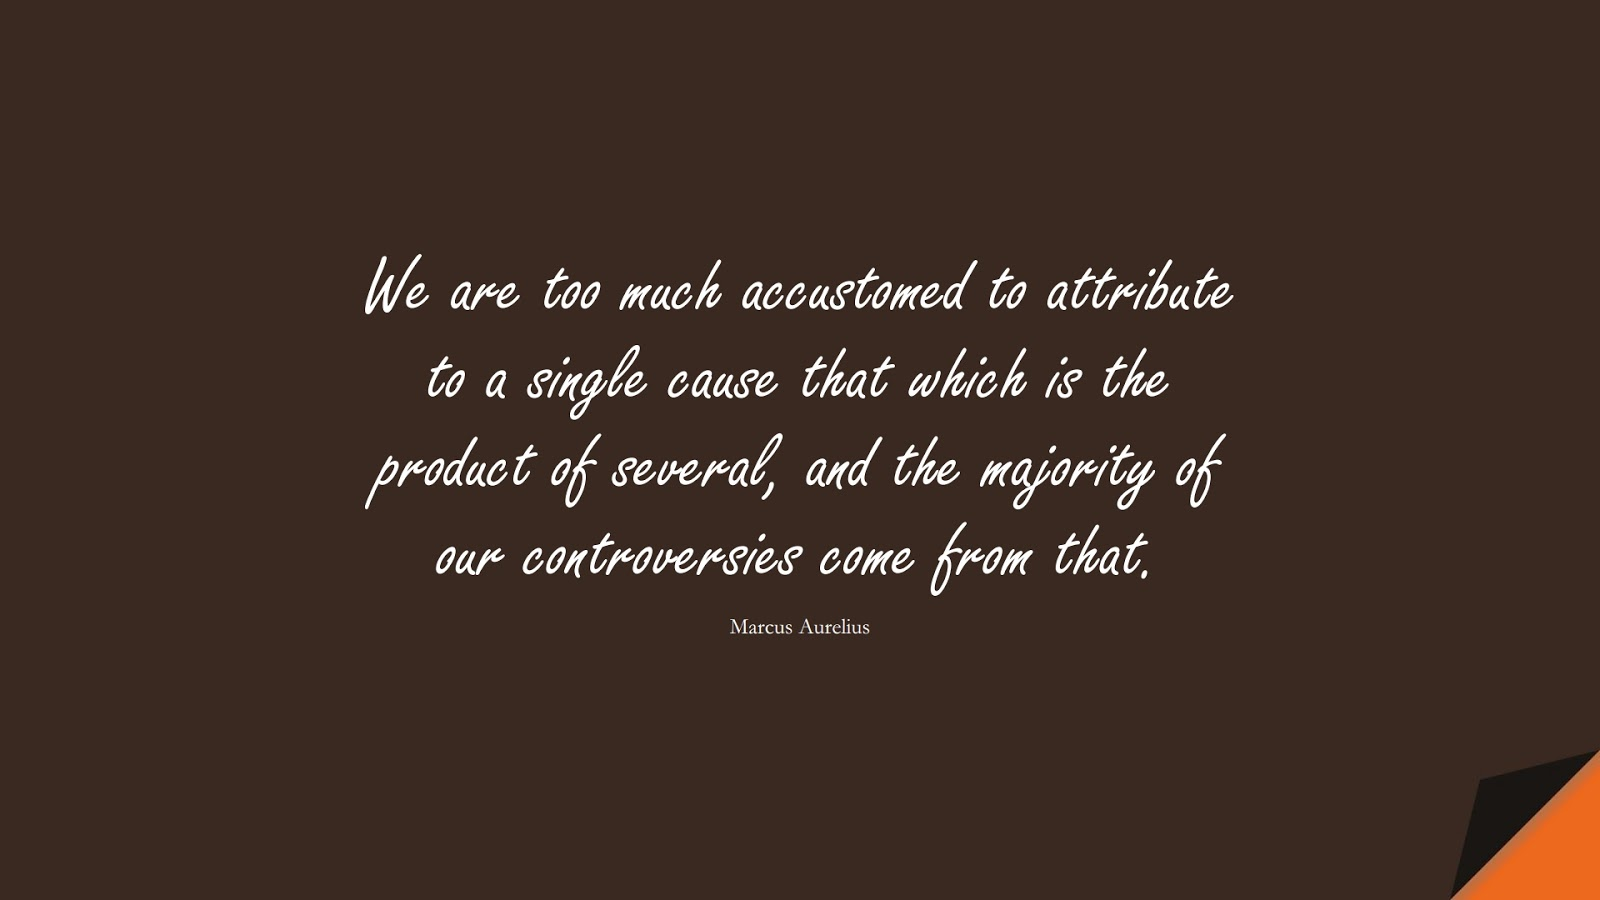 We are too much accustomed to attribute to a single cause that which is the product of several, and the majority of our controversies come from that. (Marcus Aurelius);  #MarcusAureliusQuotes